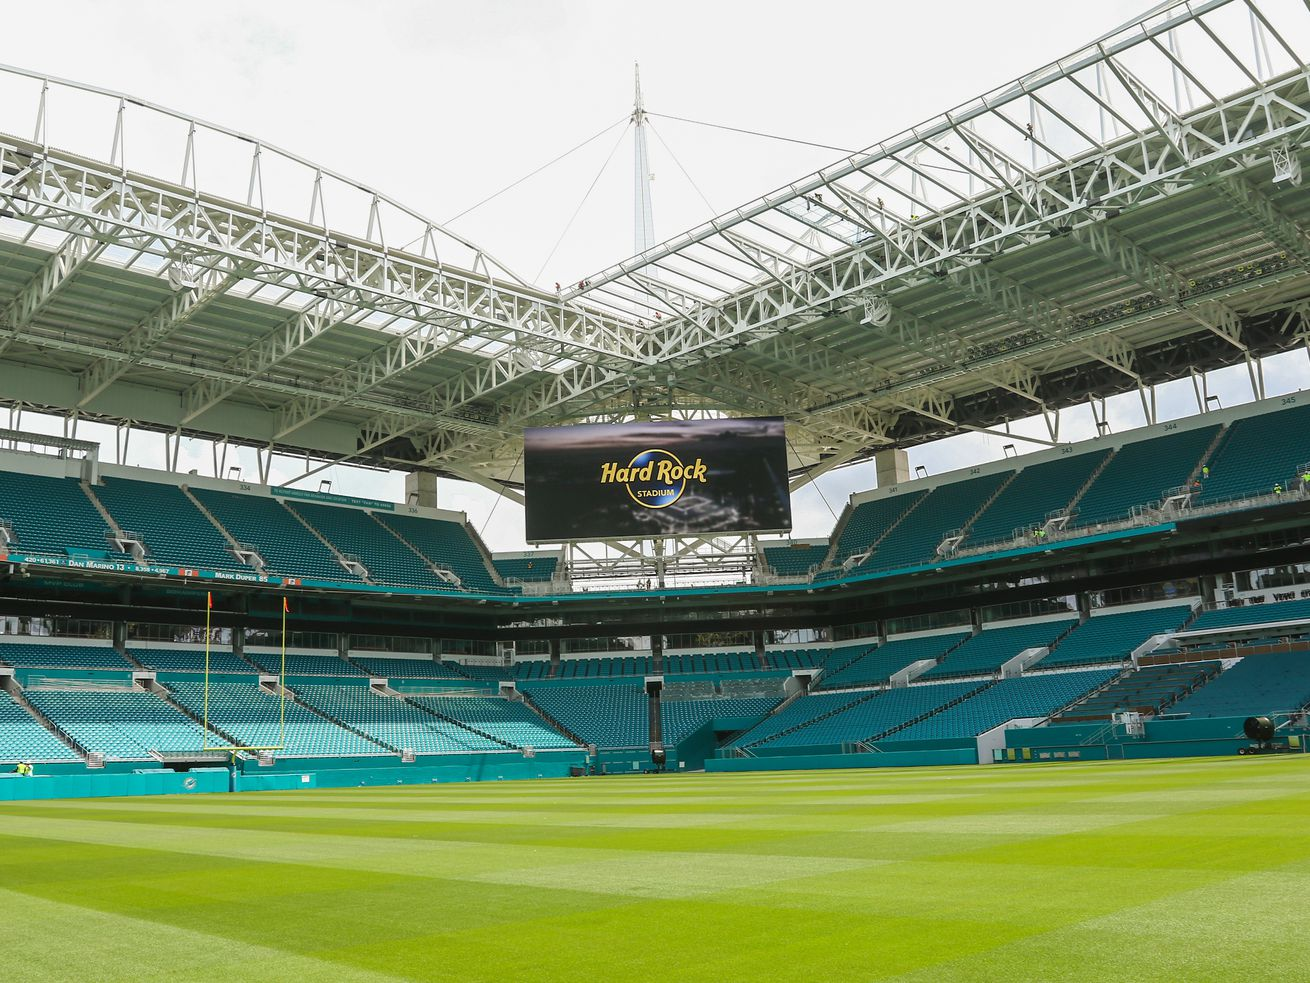 Miami's Hard Rock Stadium routinely sells out for international soccer matches.